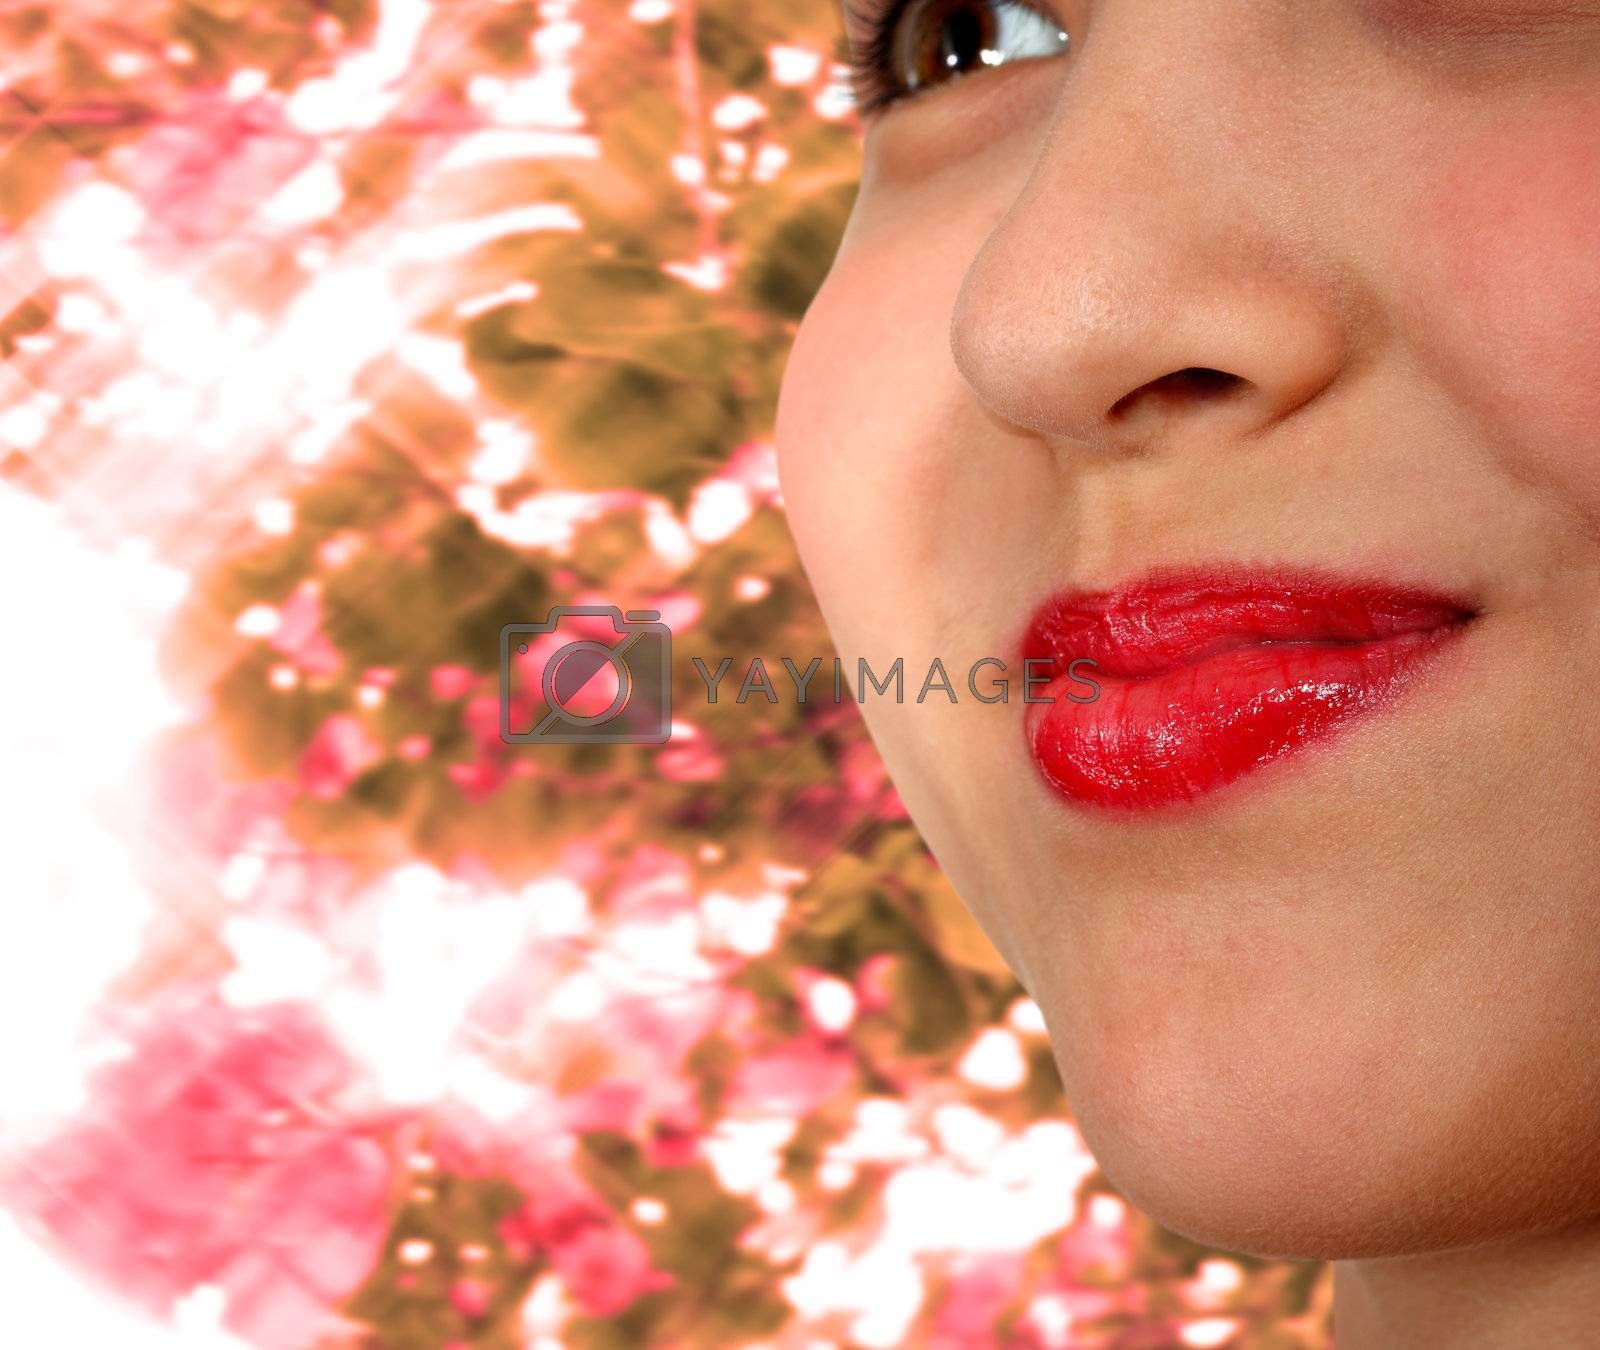 Smiling Girl With Red Lipstick and Sparkling Sunlight Background